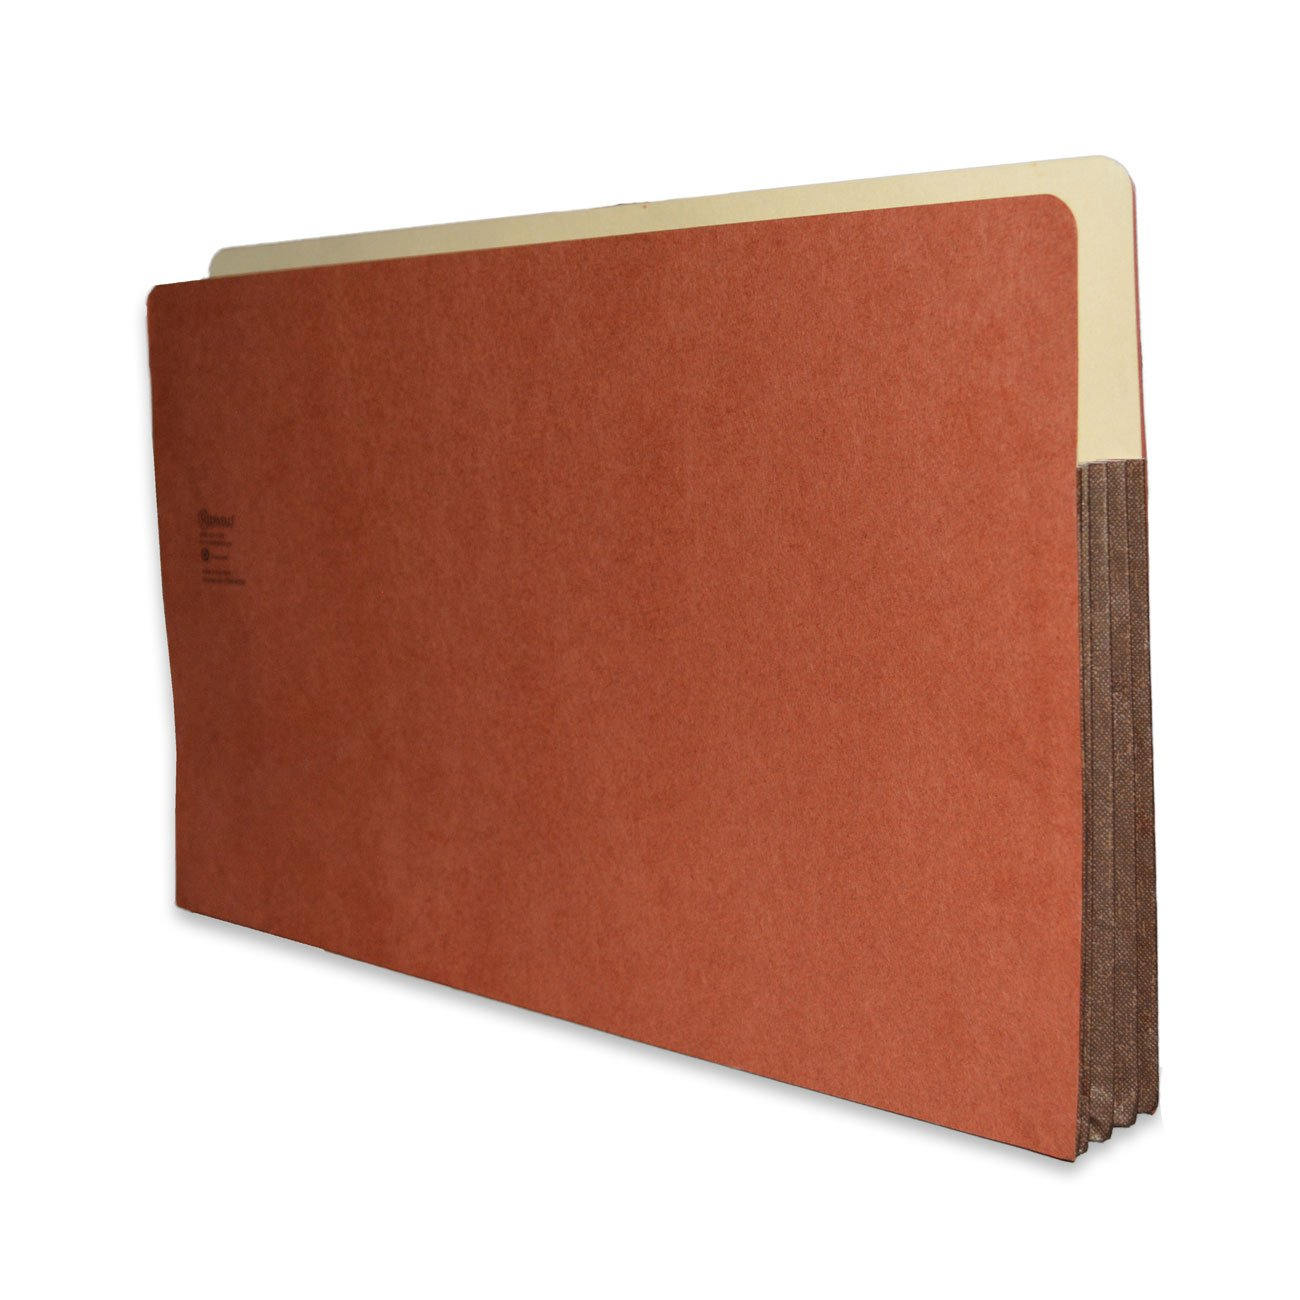 Redweld File Pocket, Top Tab, Legal Size with 3 1/2'' Fully Reinforced Tyvek Gusset, 50 per Carton